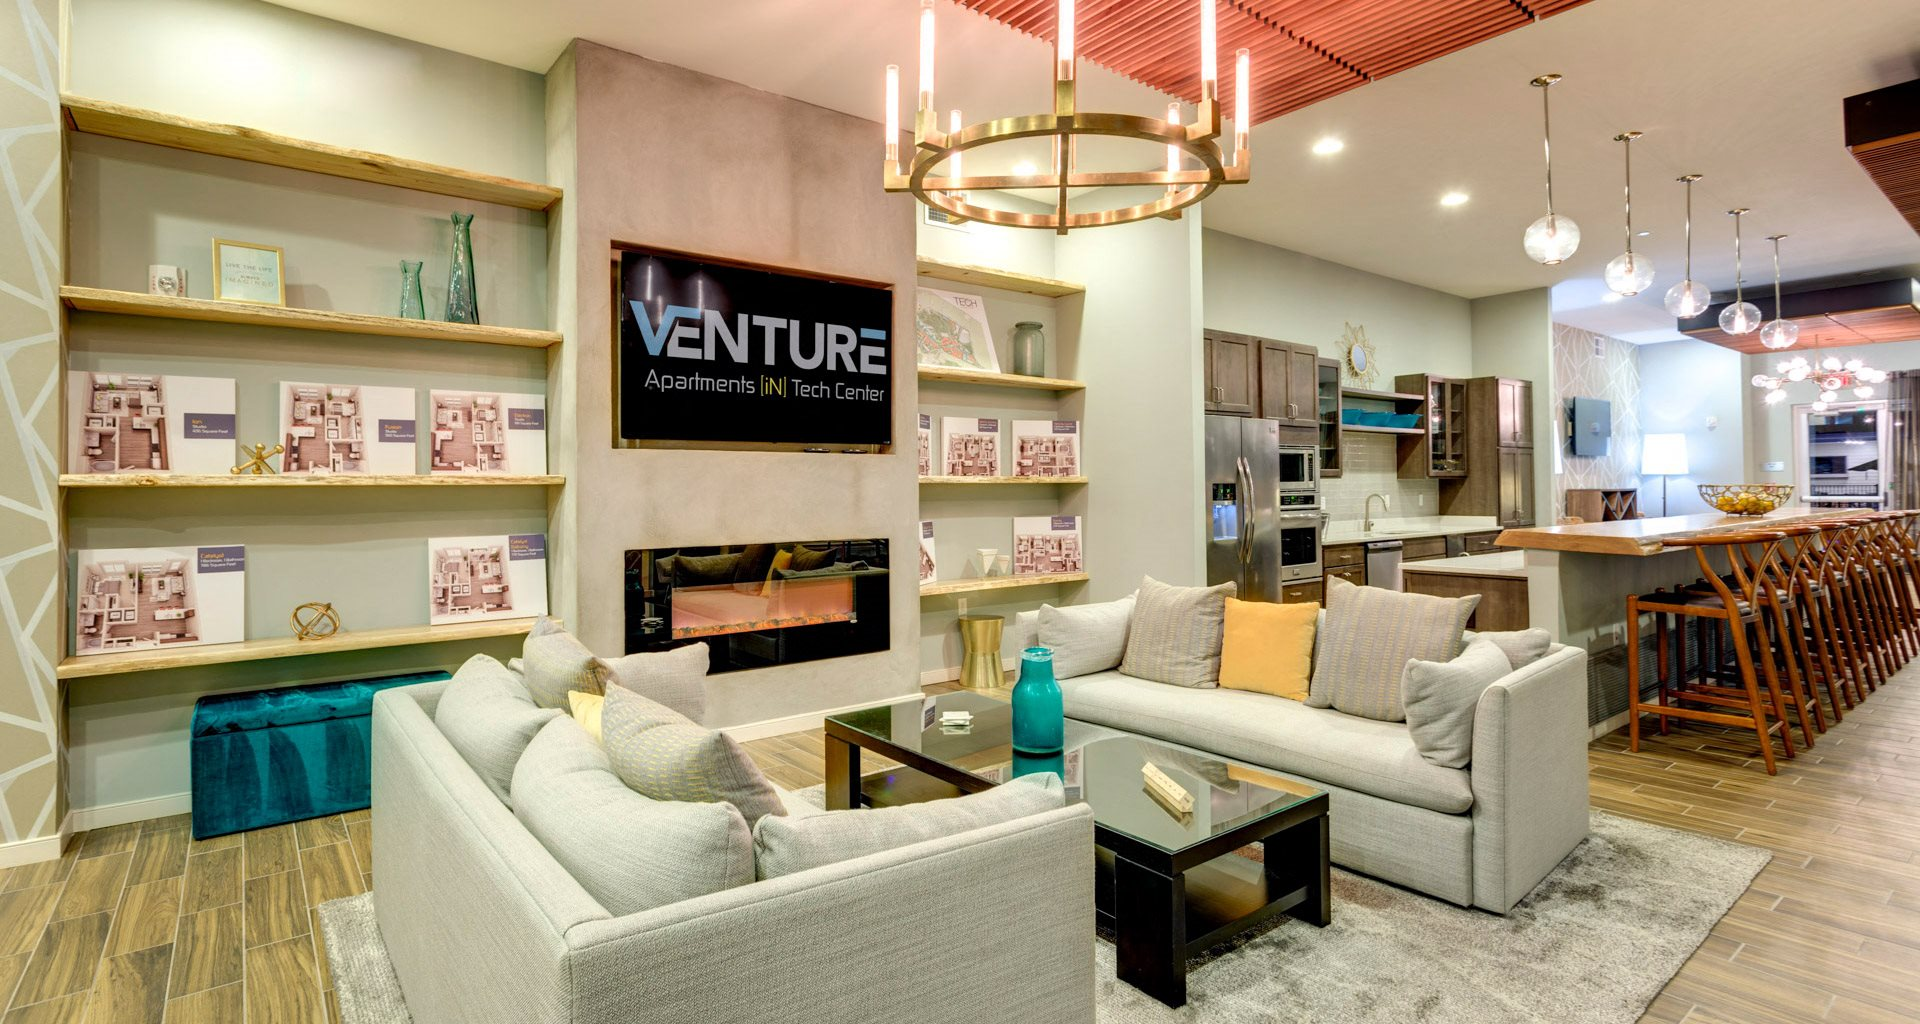 Venture Apartments iN Tech Center homepagegallery 2